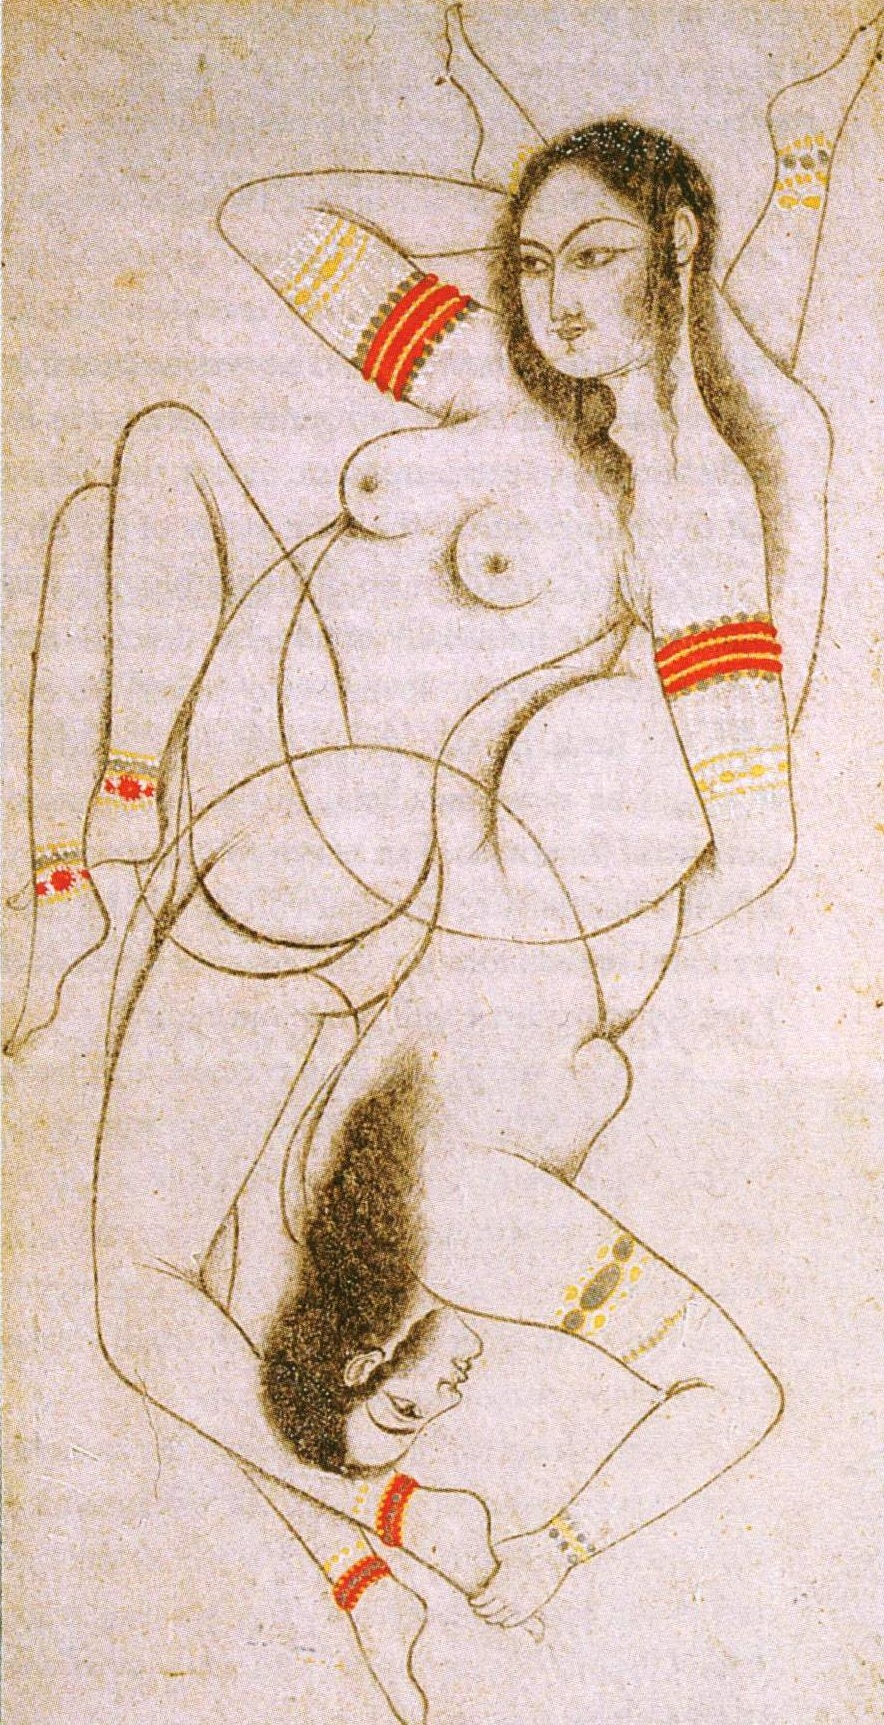 Erotic drawings of pablo picasso - 2 10